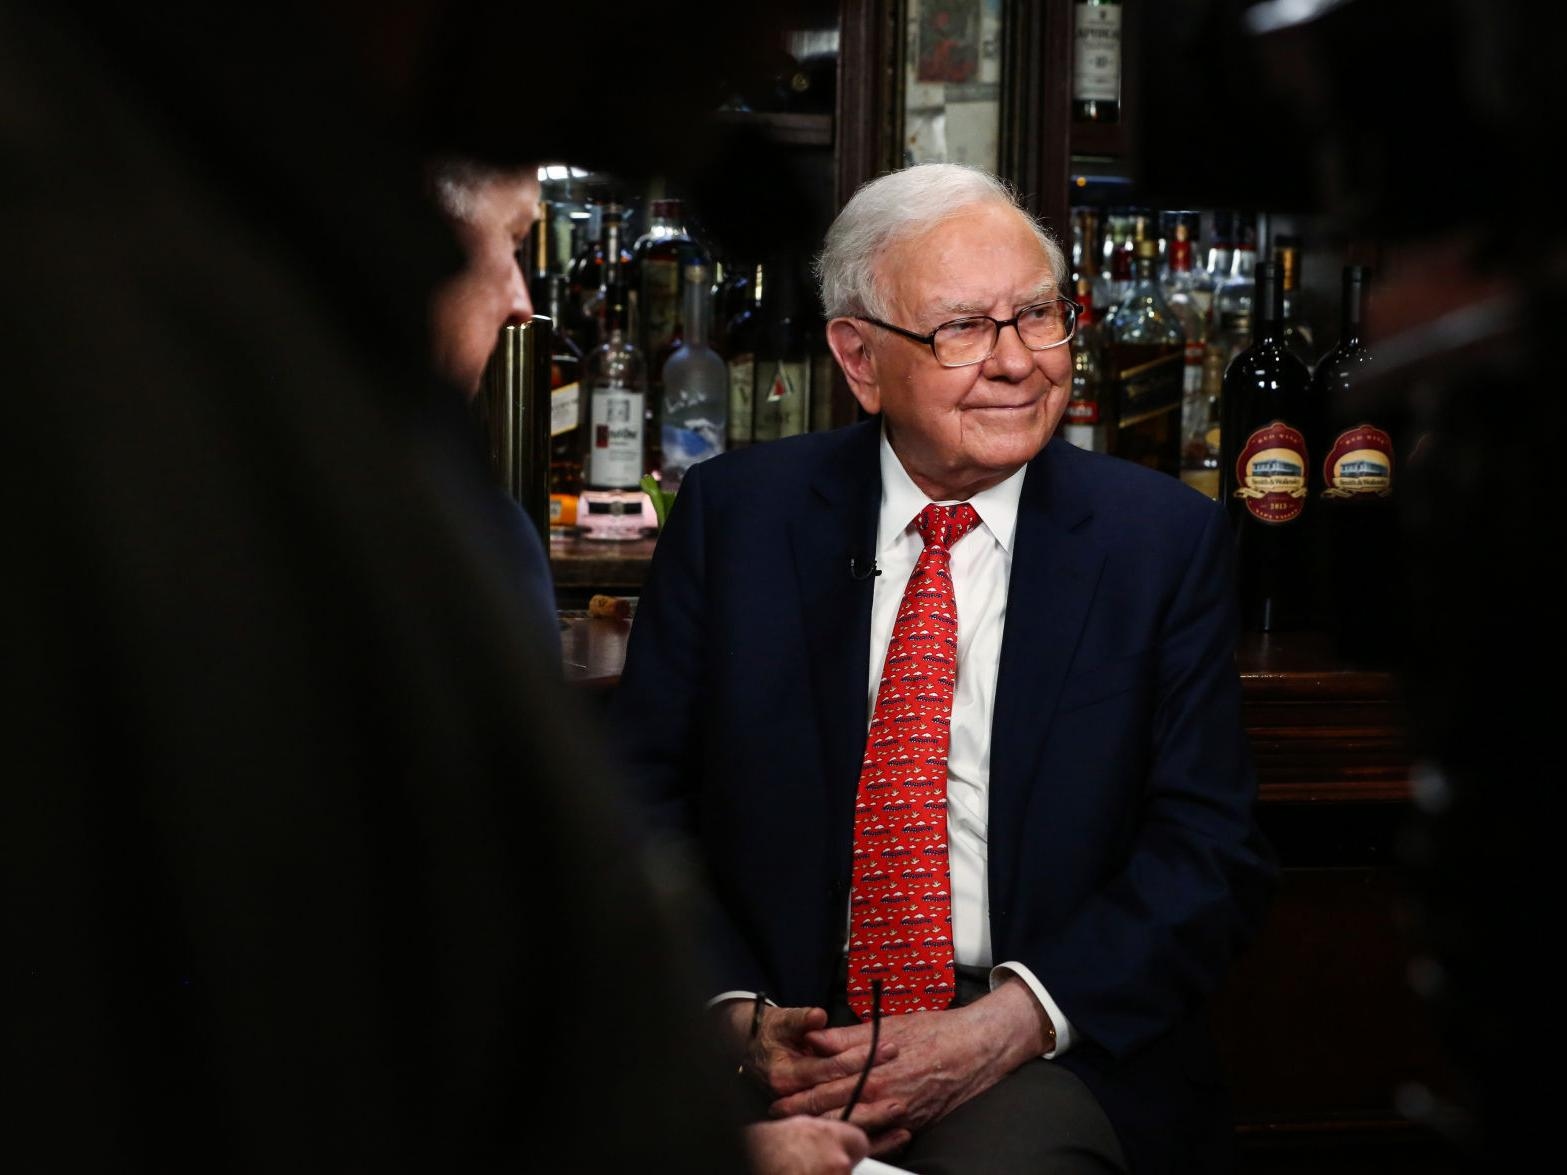 Berkshire Hathaway Letter: Buffett's about to reveal if his cash headache found any relief